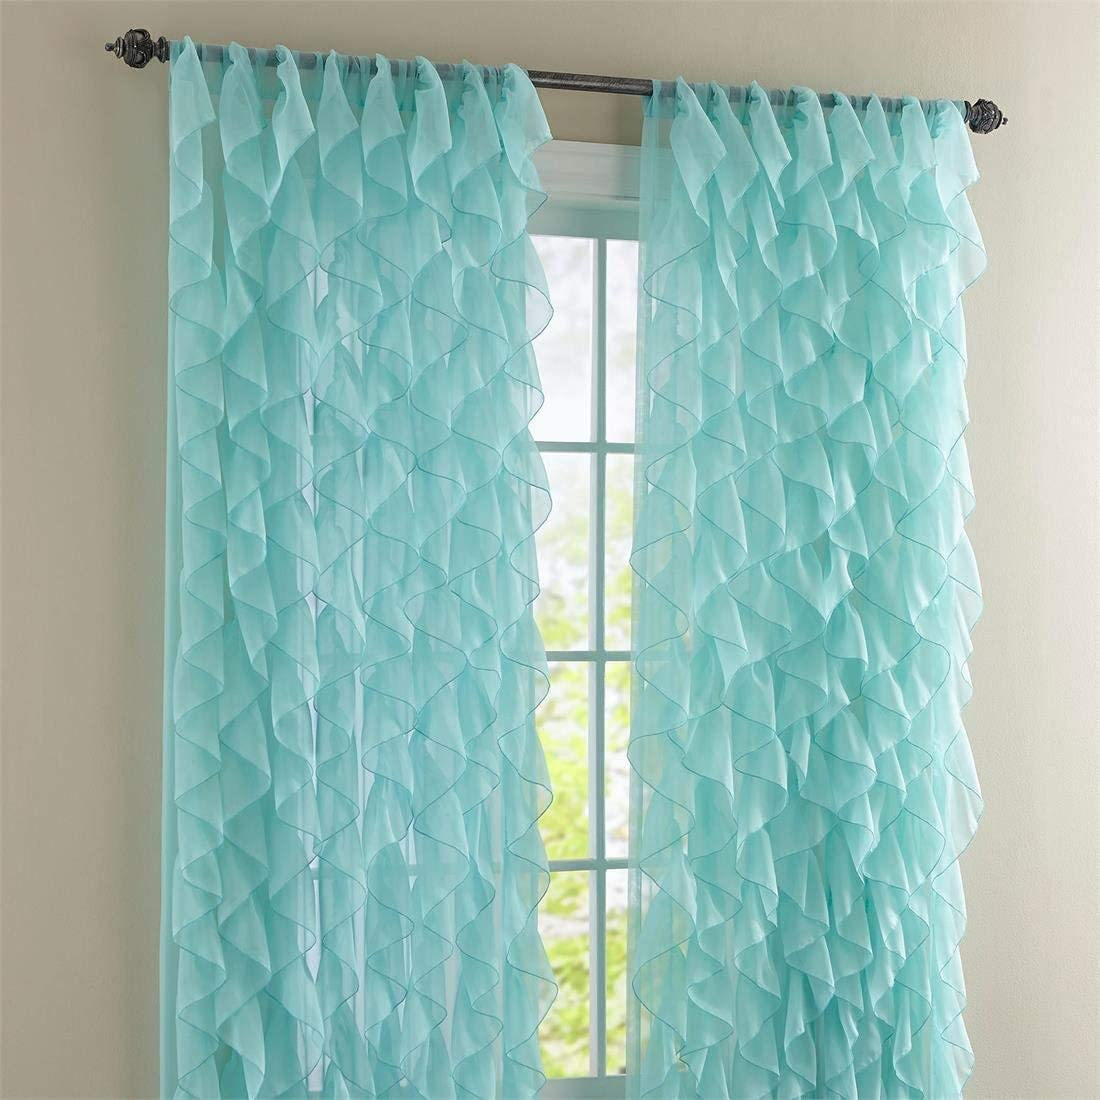 "Lorraine Home Fashions Cascade Sea 84"" Shabby Chic Sheer Ruffled Curtain Panel"